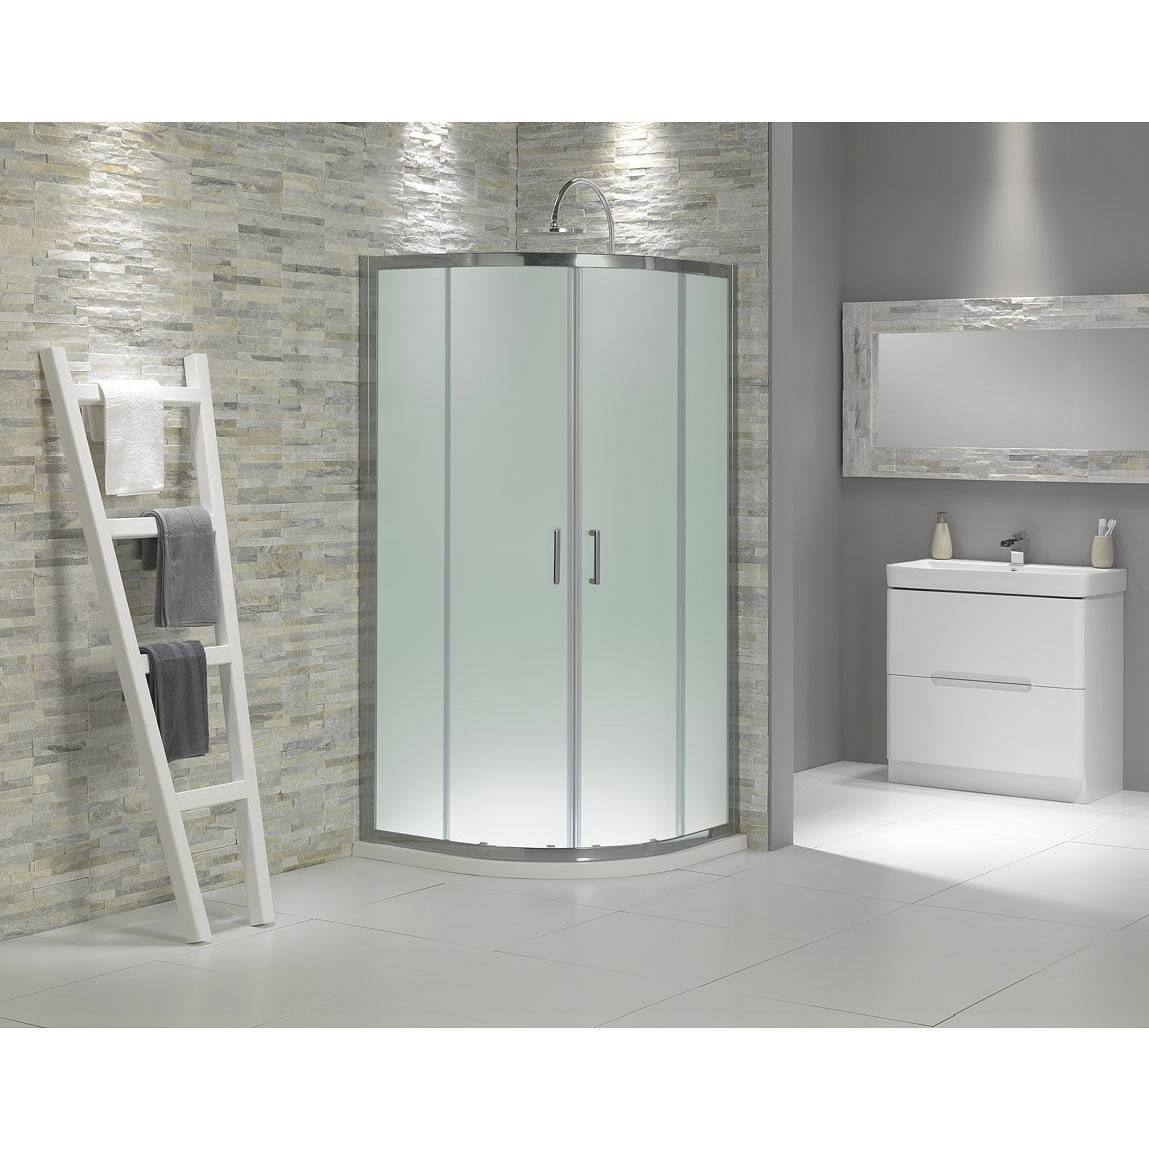 glass showers | Buy Frosted Glass Quadrant Shower Enclosure 900 in ...